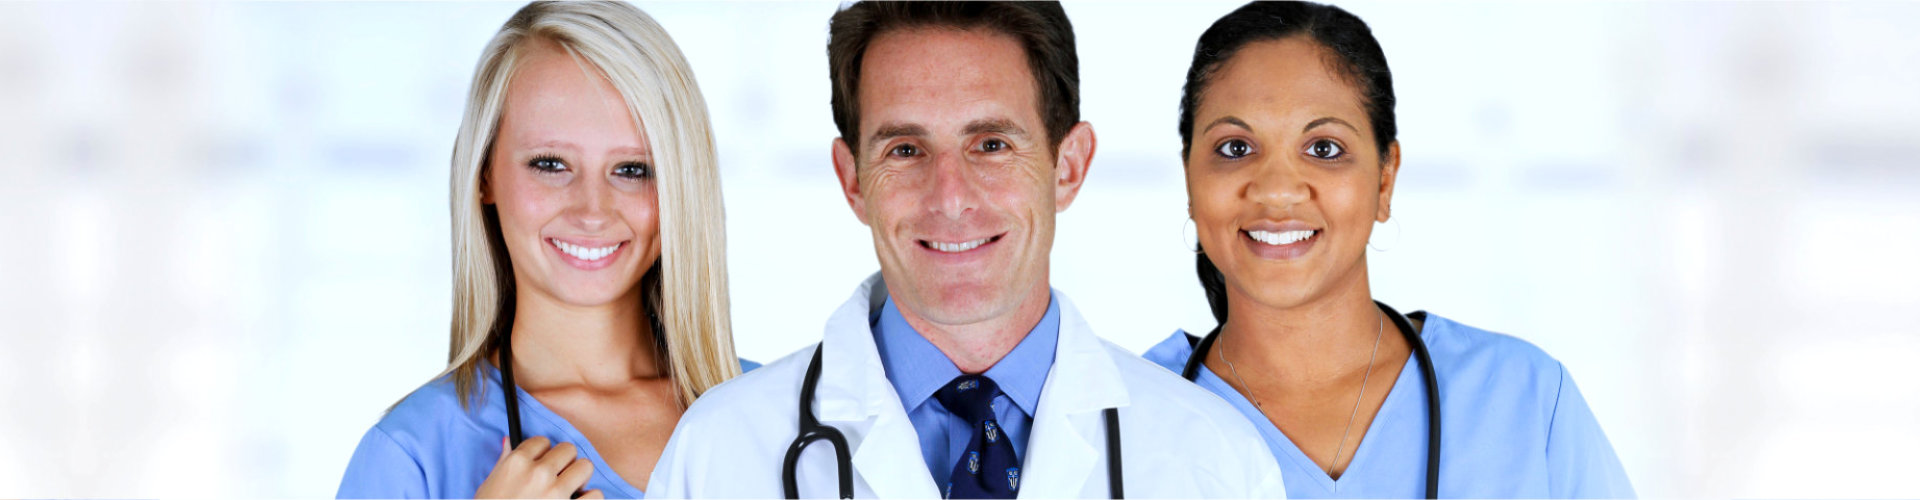 group of medical staff smiling